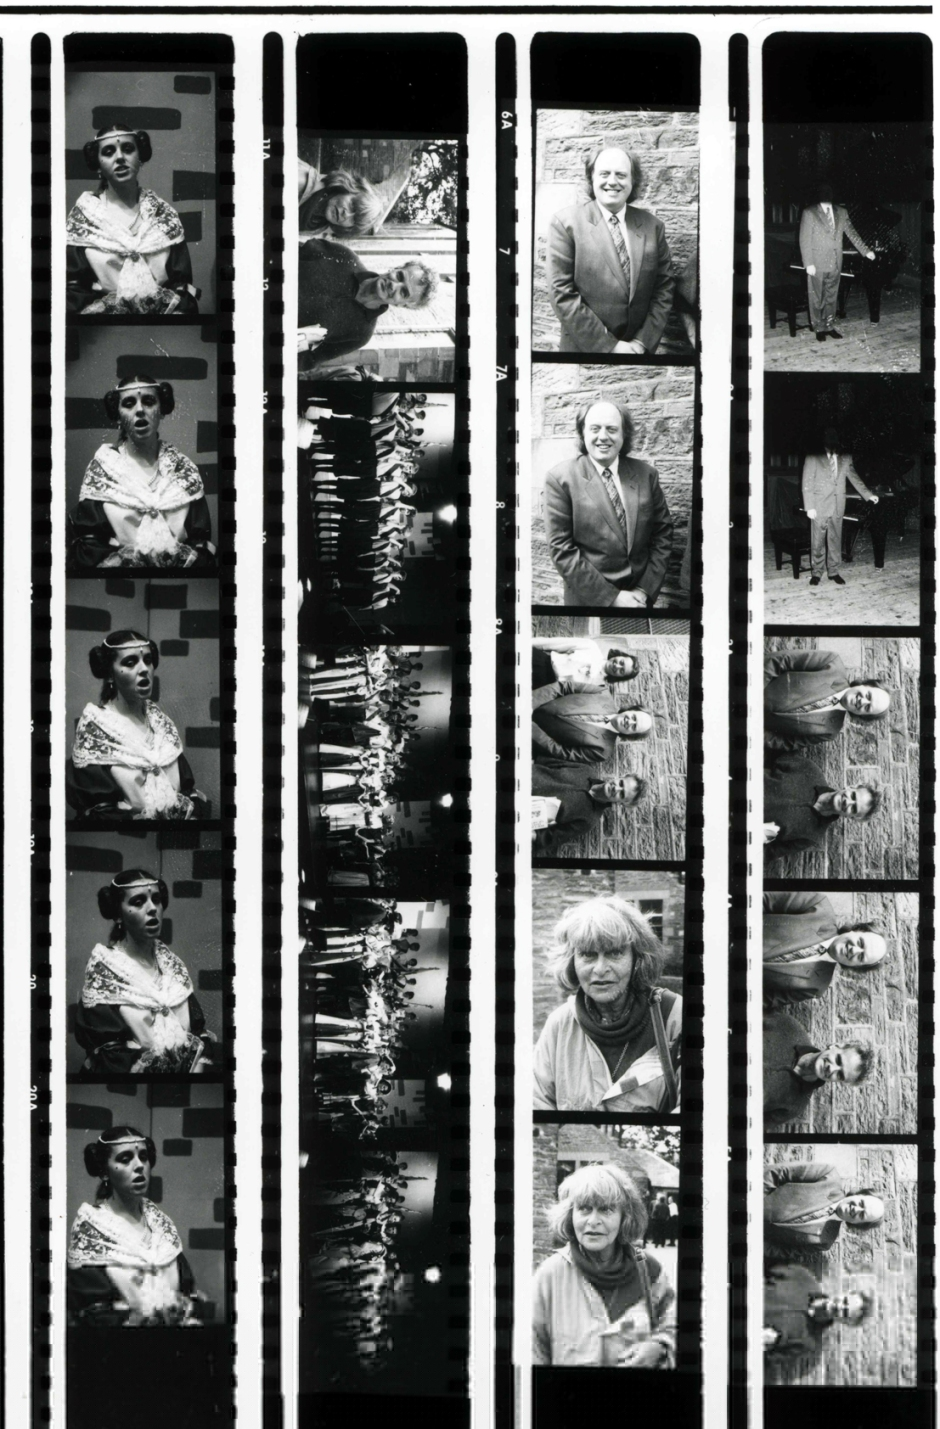 A contact sheet of strips of negatives of performers.